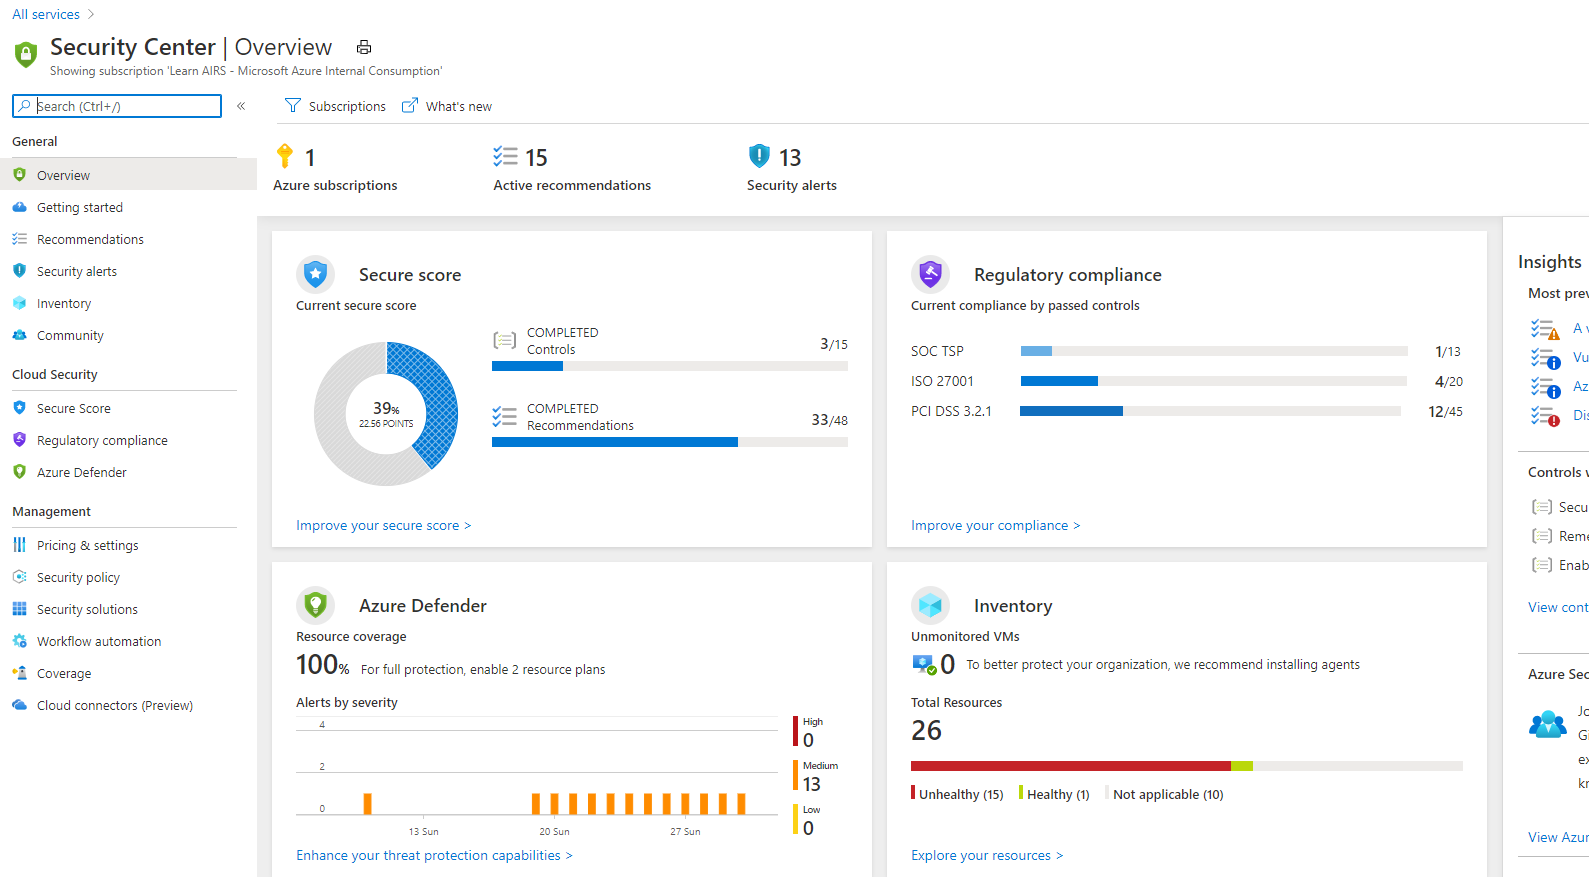 Screenshot showing the Azure Security Center view in the Azure portal